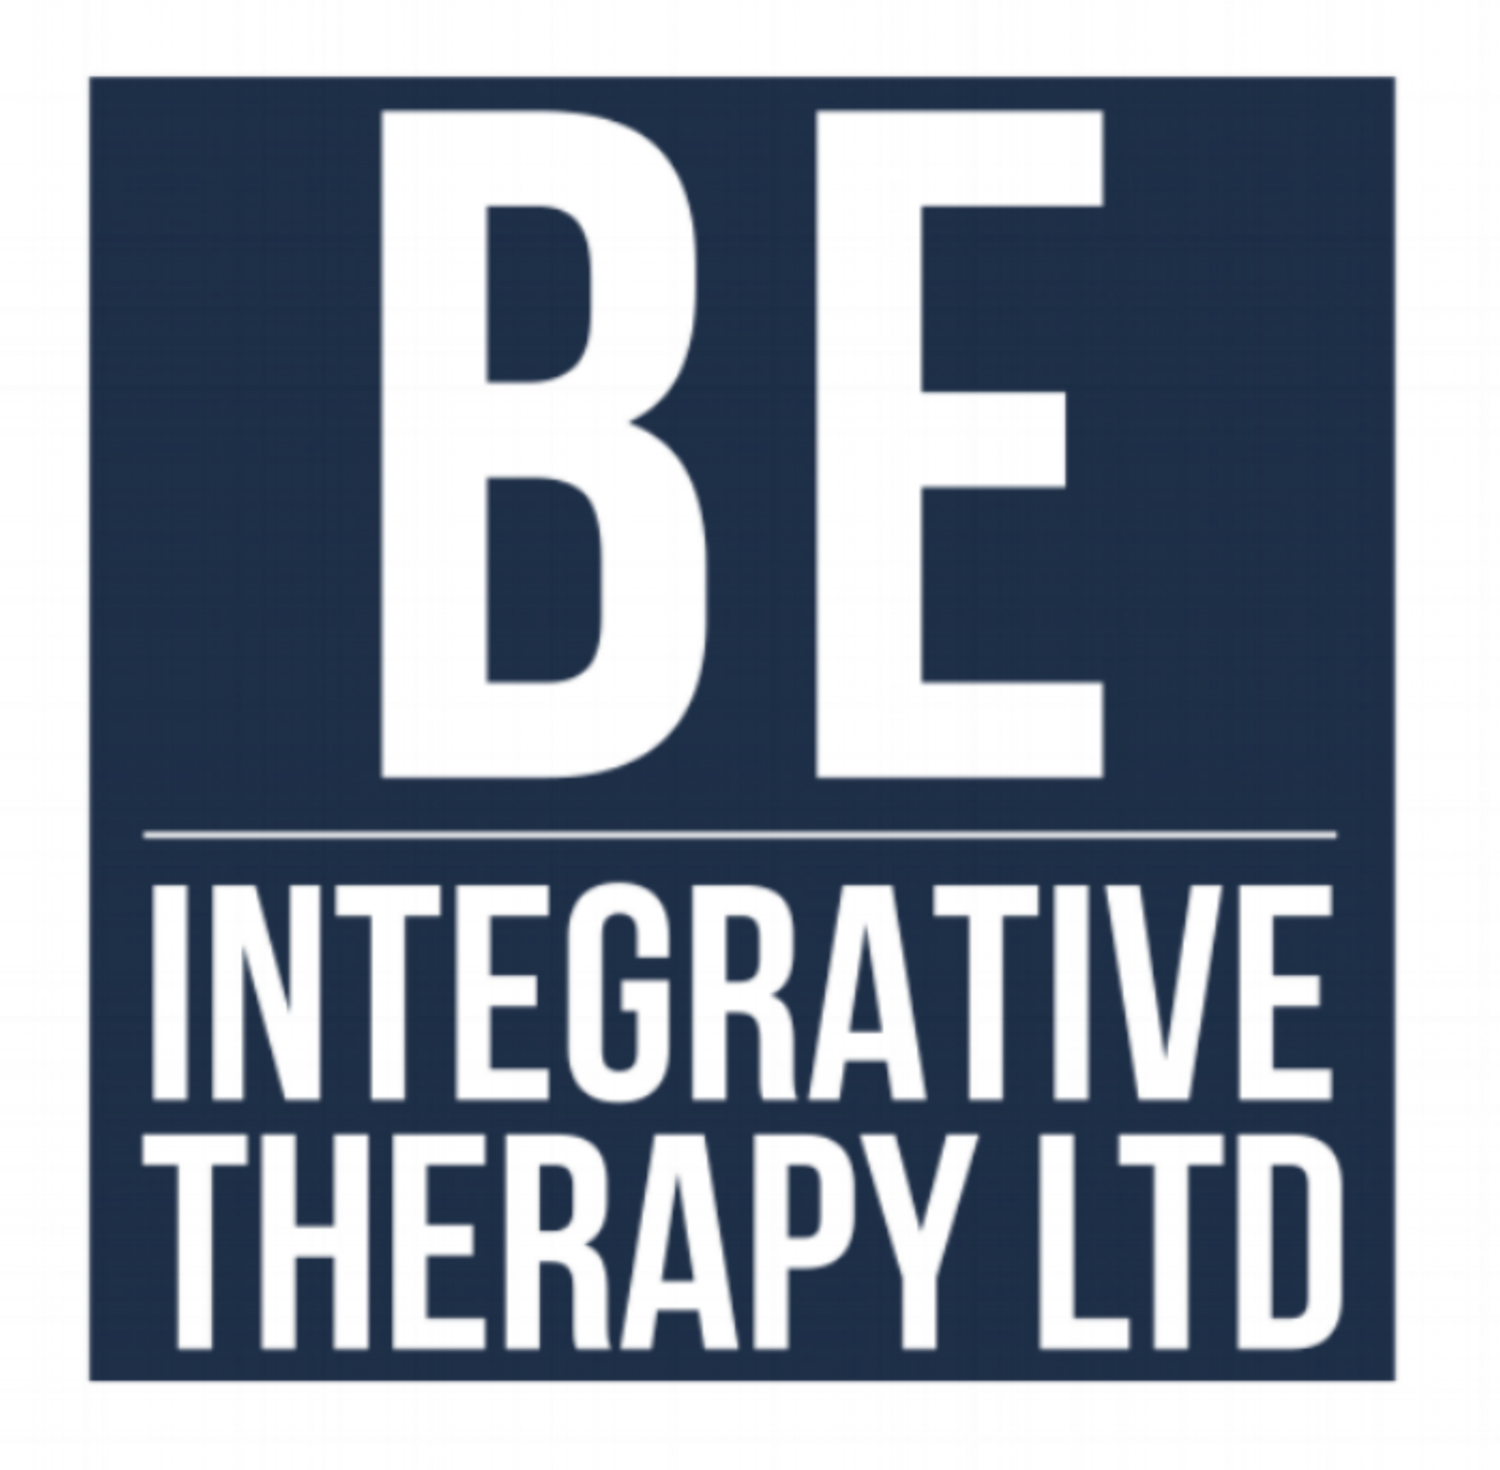 BE Integrative Therapy Ltd